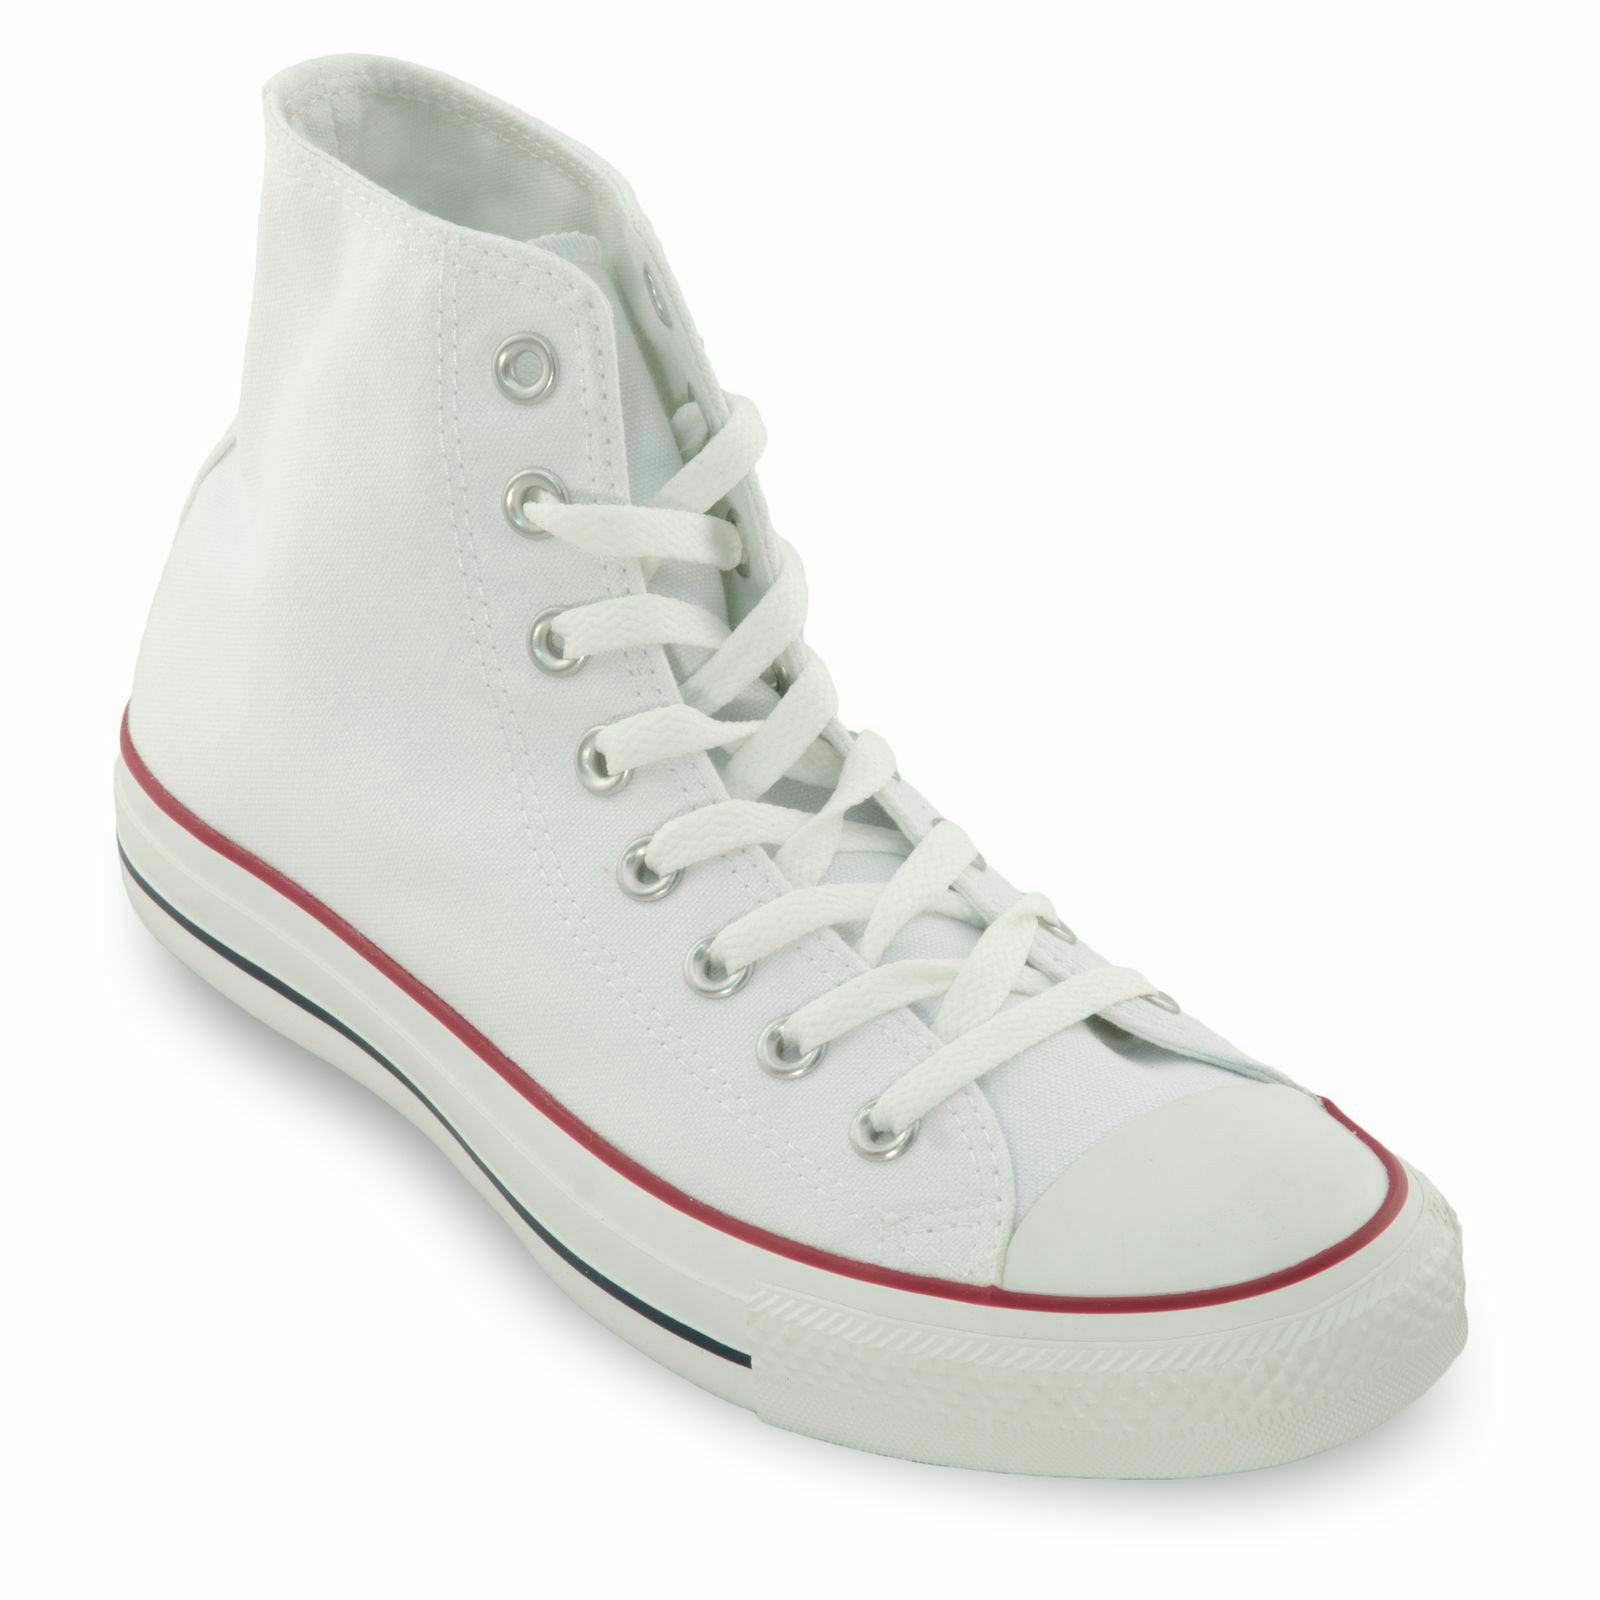 a5b1b3ad76a 57. 57. Previous. Converse Women Shoes Chuck Taylor All Star HiTop Flat  Canvas Sneaker Optic White